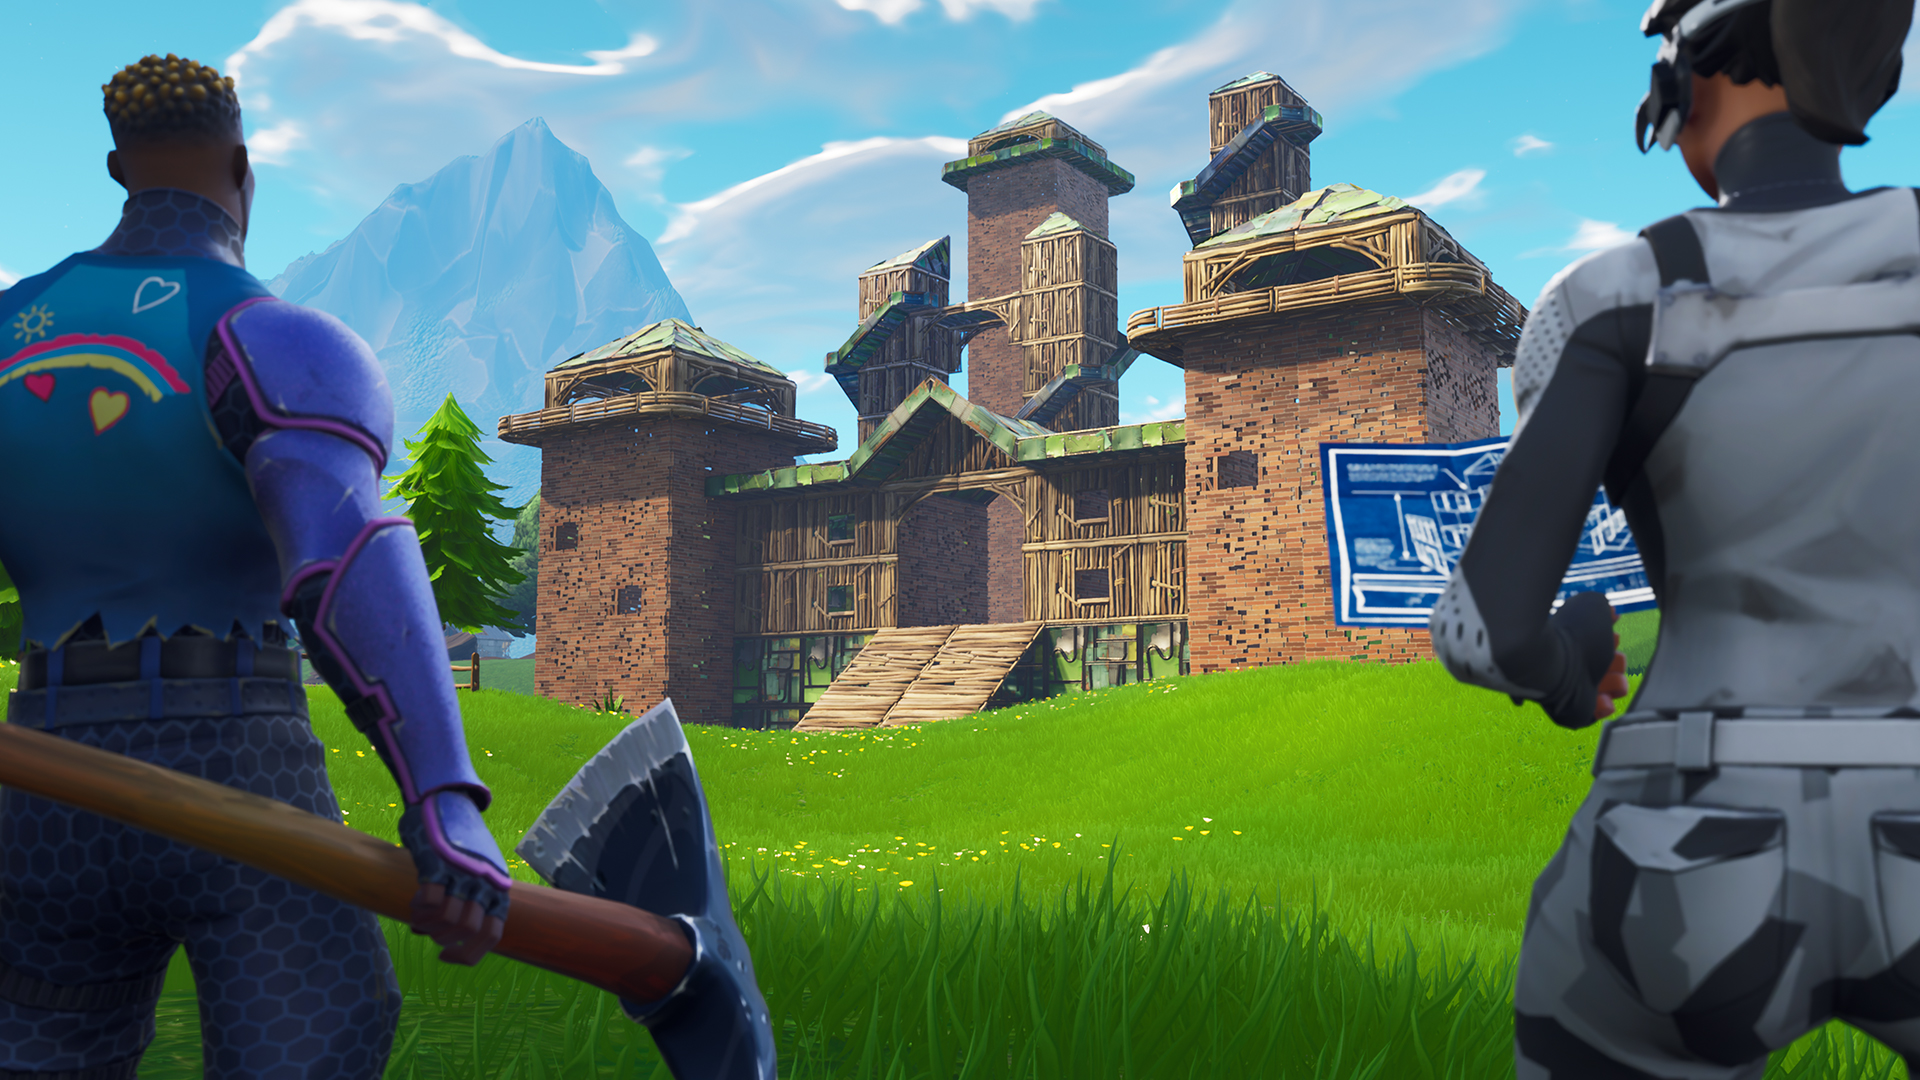 fortnite says failed to connect to matchmaking service hbcu interracial dating